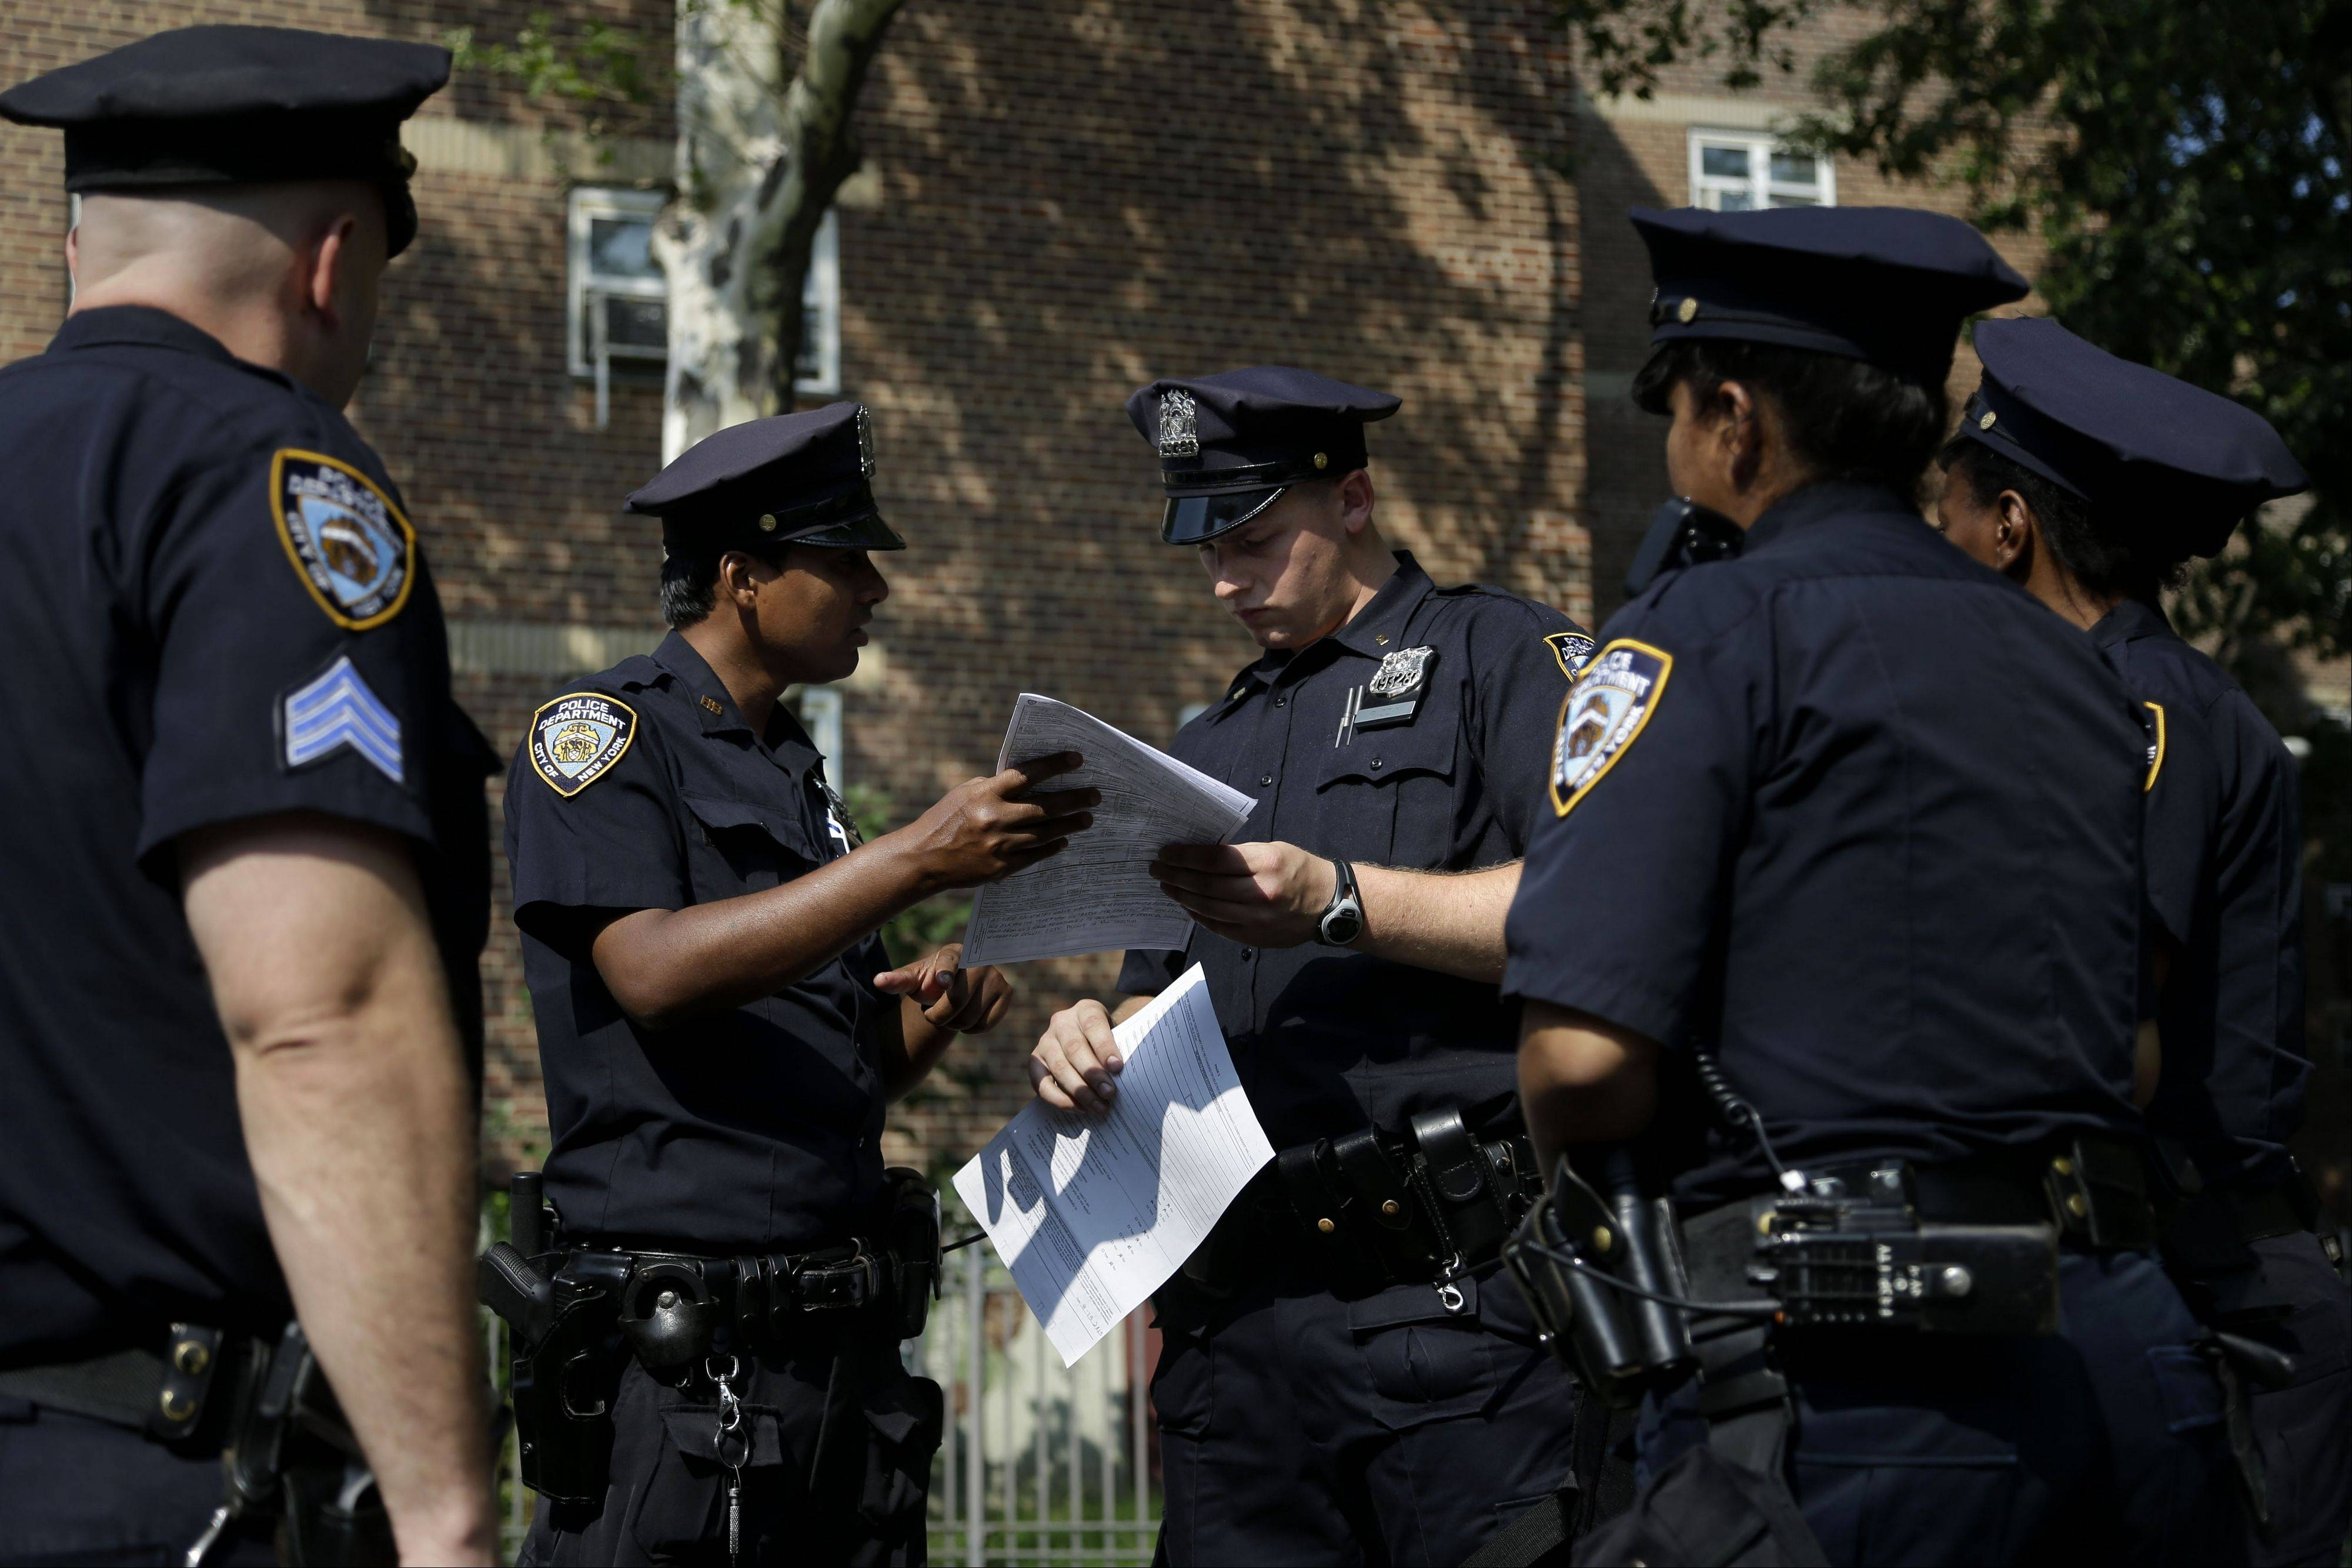 A federal appeals court block of a judge's ruling that found the New York Police Department's stop-and-frisk policy discriminated against minorities may be short lived, depending on the outcome of next week's mayoral election.